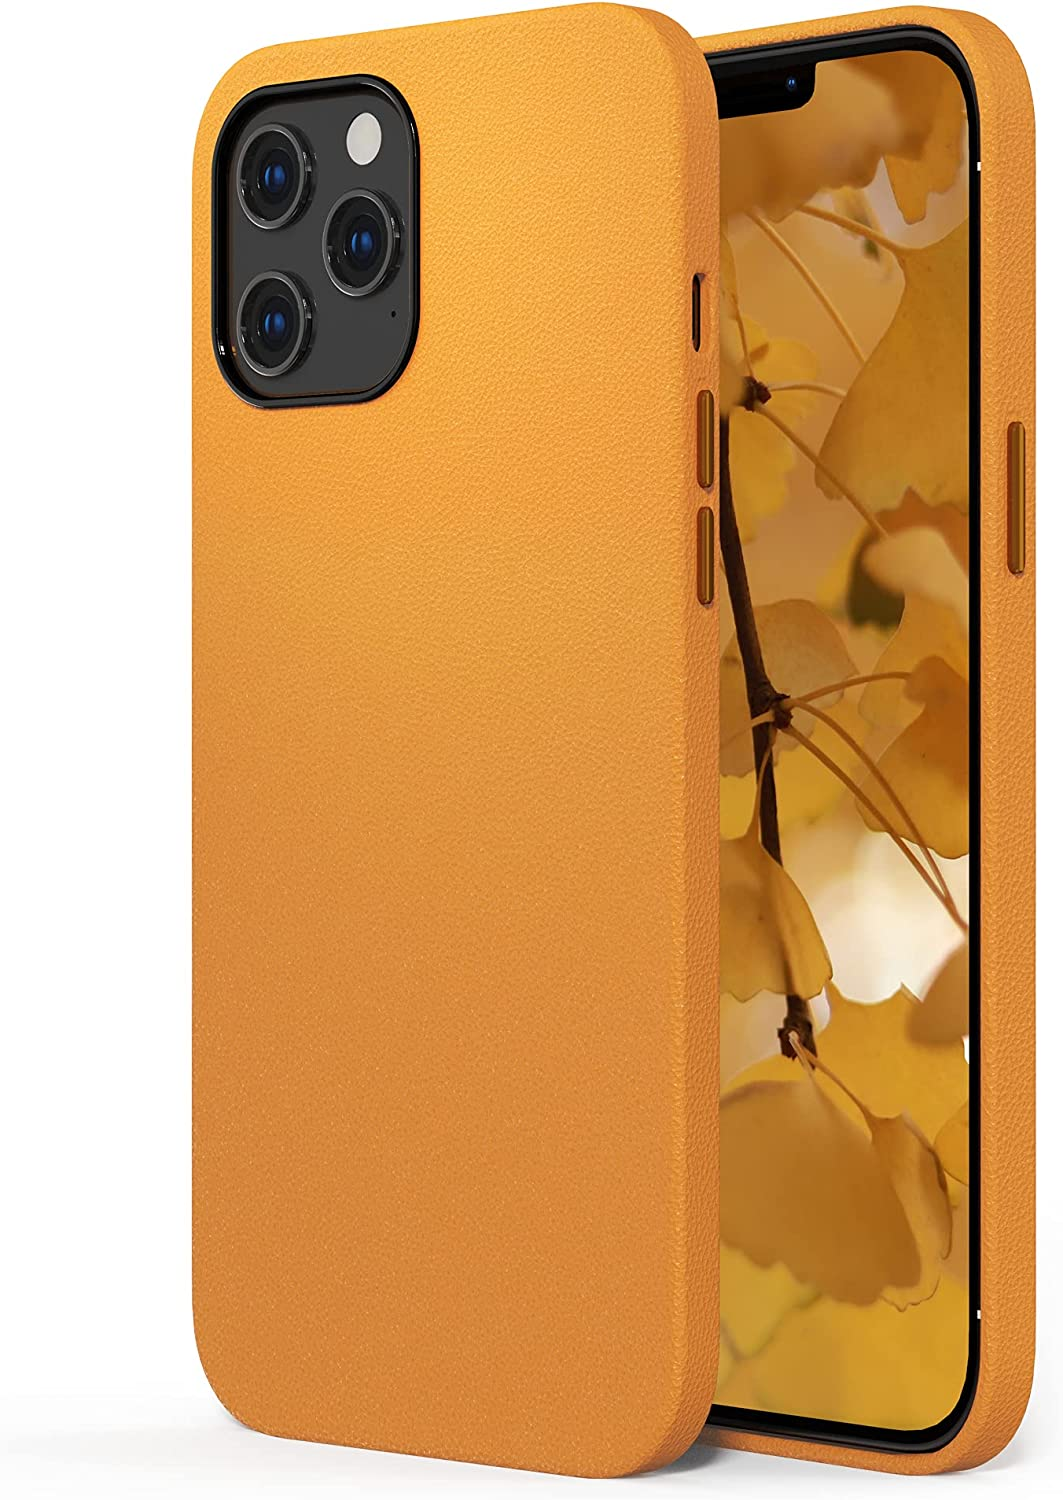 SURPHY Faux Leather Case Compatible with iPhone 12 Pro Max Case 6.7 inches, Premium Faux Leather Case Cover (with Metallic Buttons & Microfiber Lining) for iPhone 12 Pro Max (California Poppy)